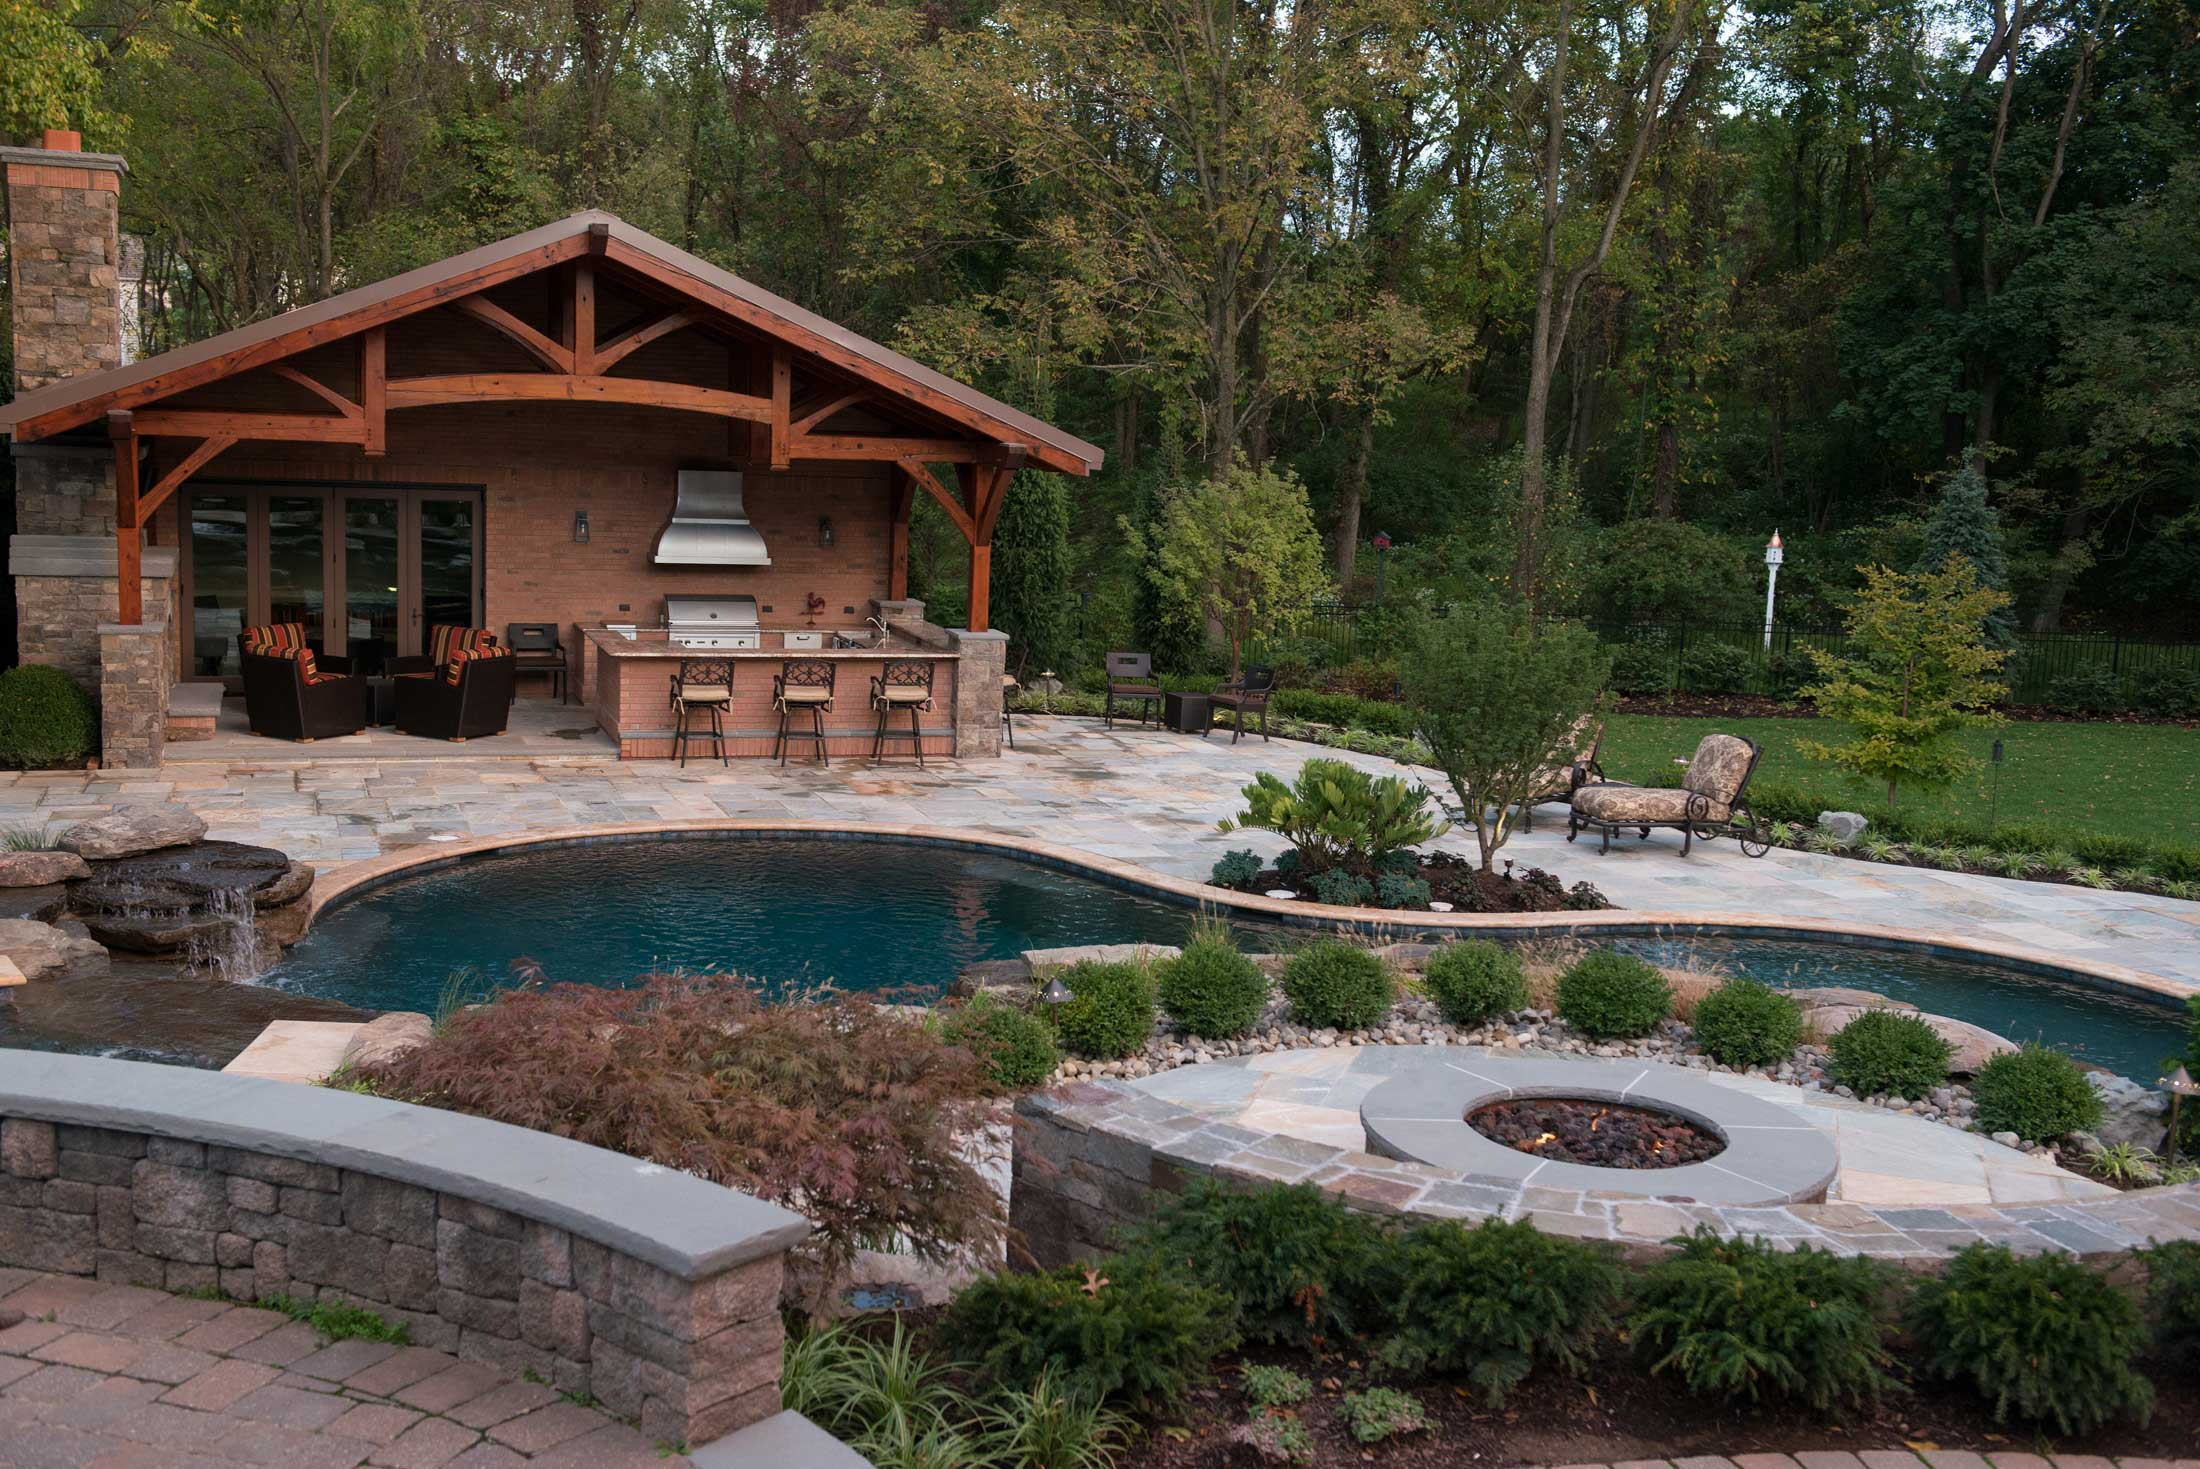 Outdoor Living with pool, bar and outdoor kitchen